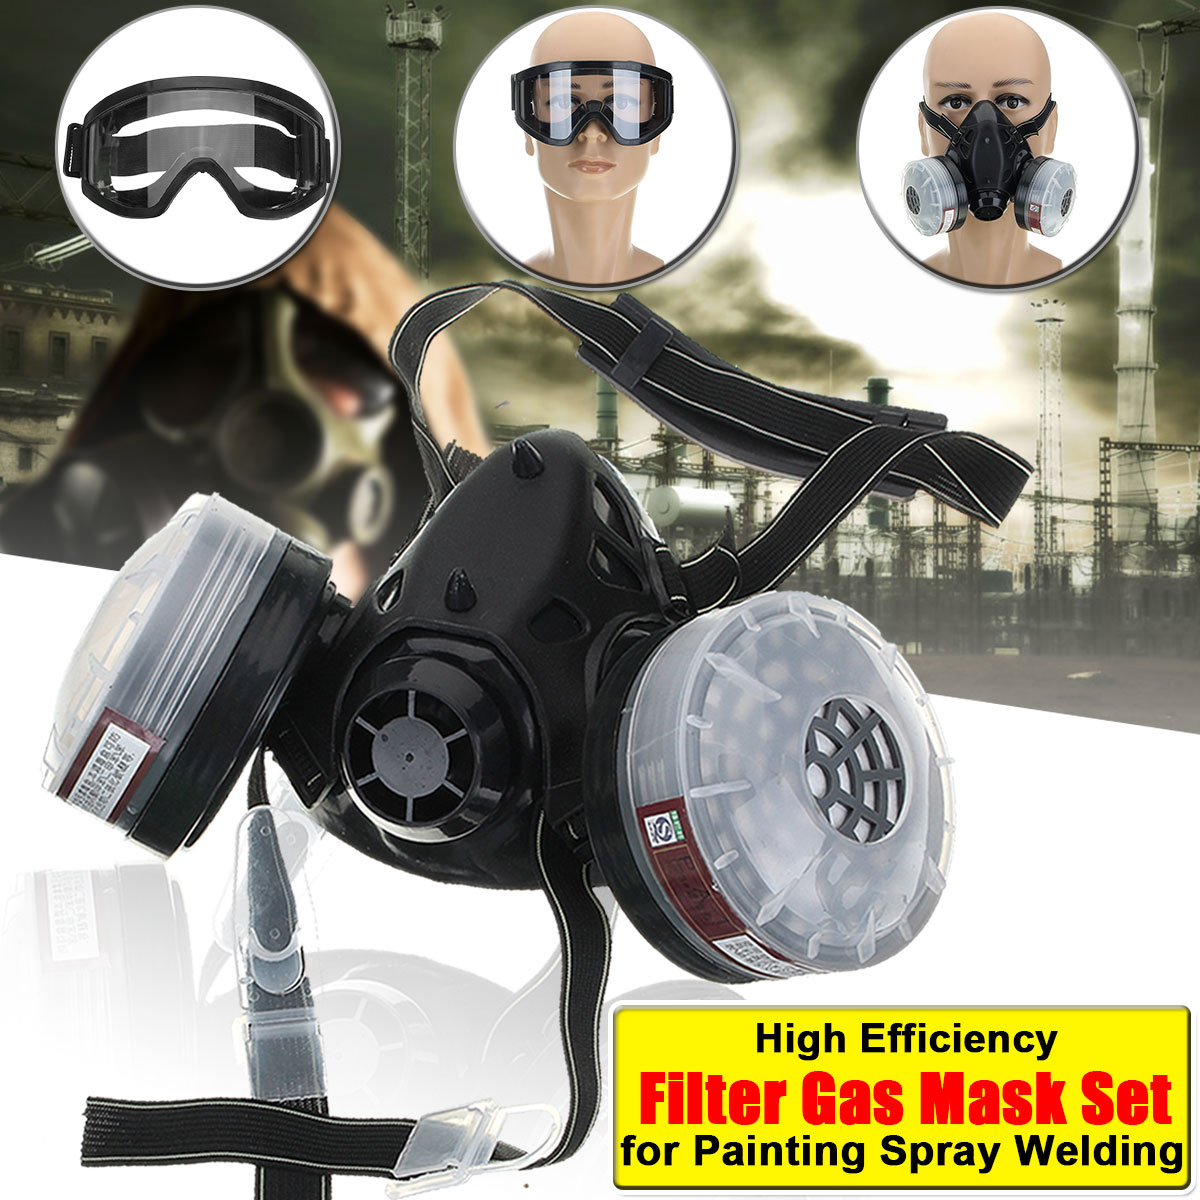 4 in 1 Half Face Gas Mask Spray Painting Dust N95 Mist Fume Chemical Respirator for Painting Spray Welding